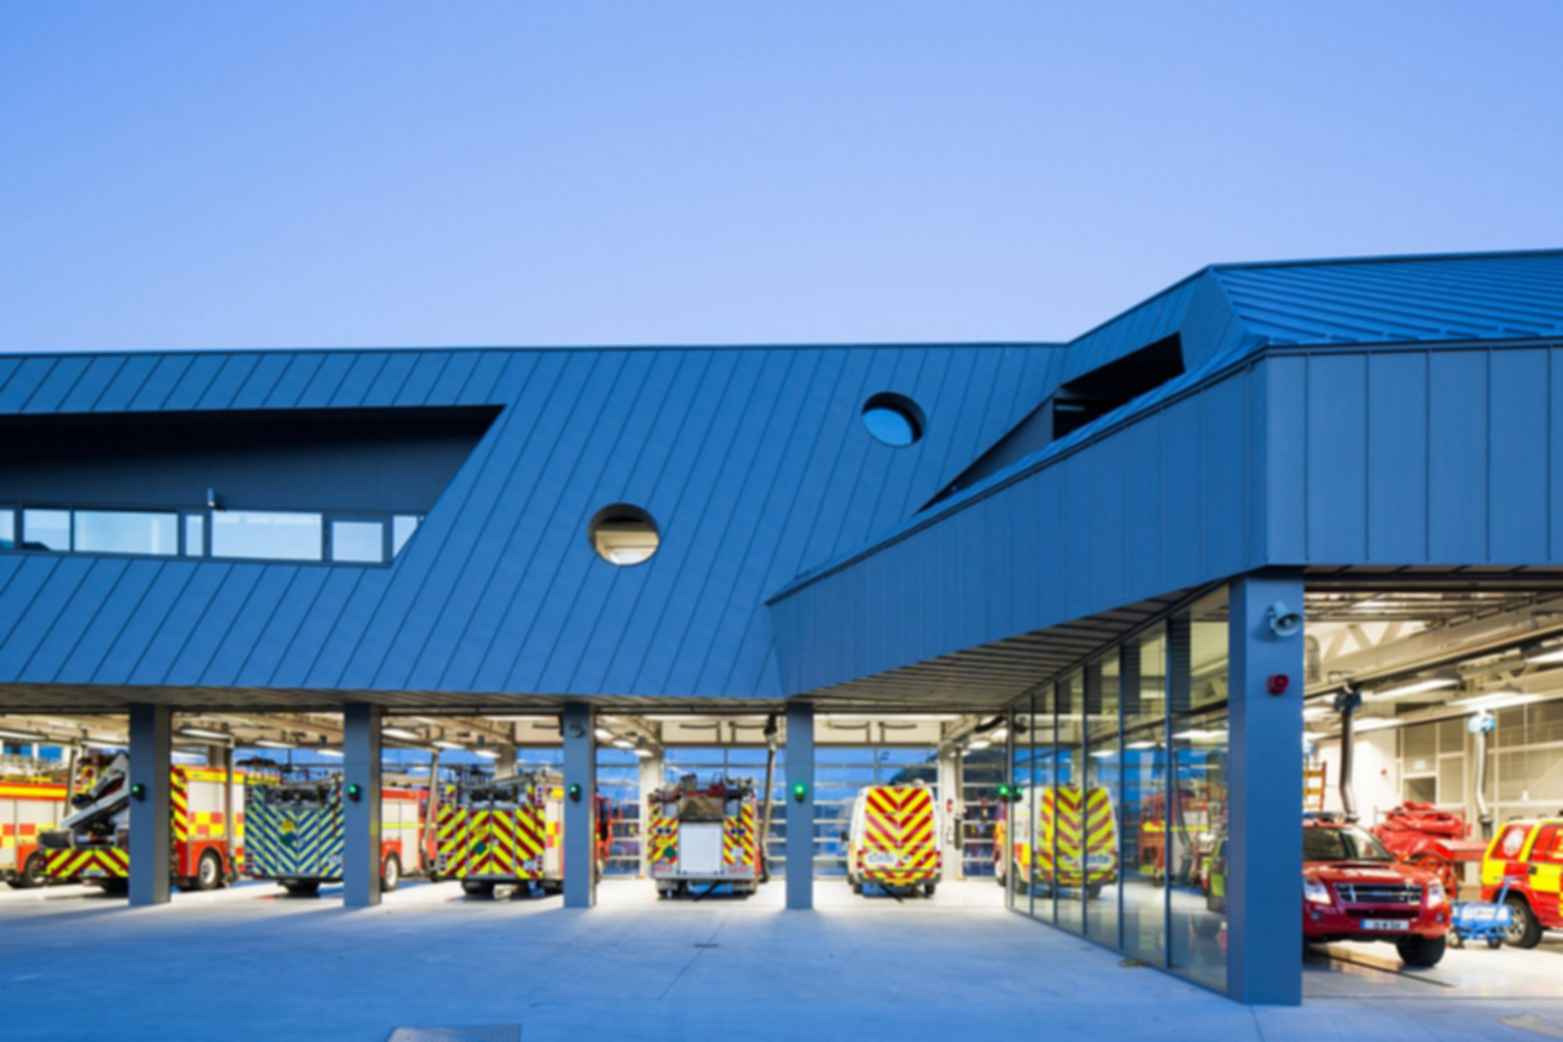 Waterford Fire Station - Exterior/Fire Truck Parking